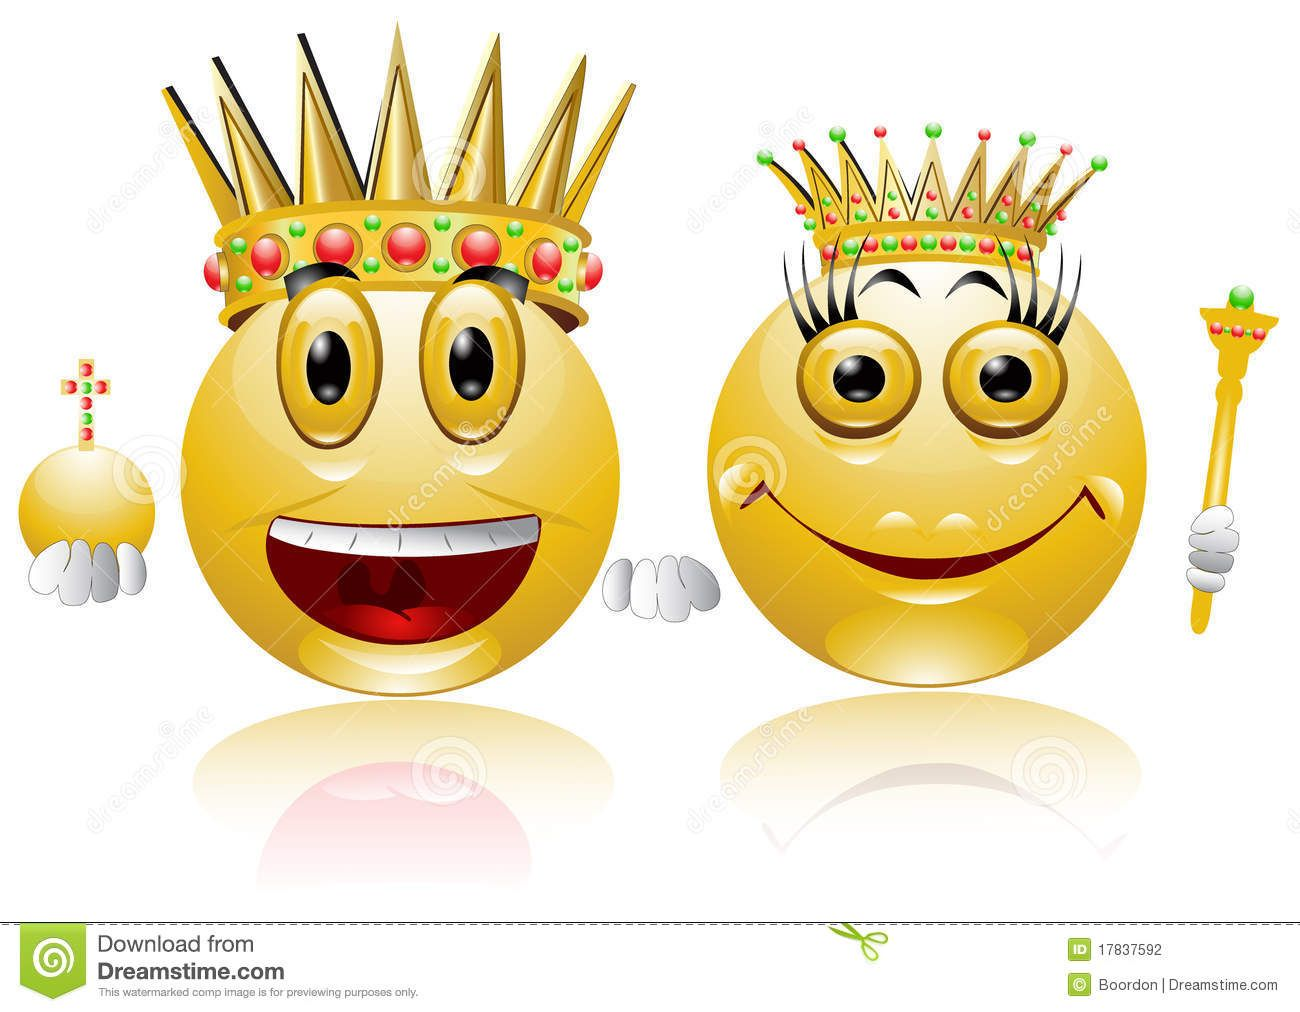 King Queen Glossy Smile Icon 17837592 Jpg 1300 1012 Smile Icon Emoji Images Smiley